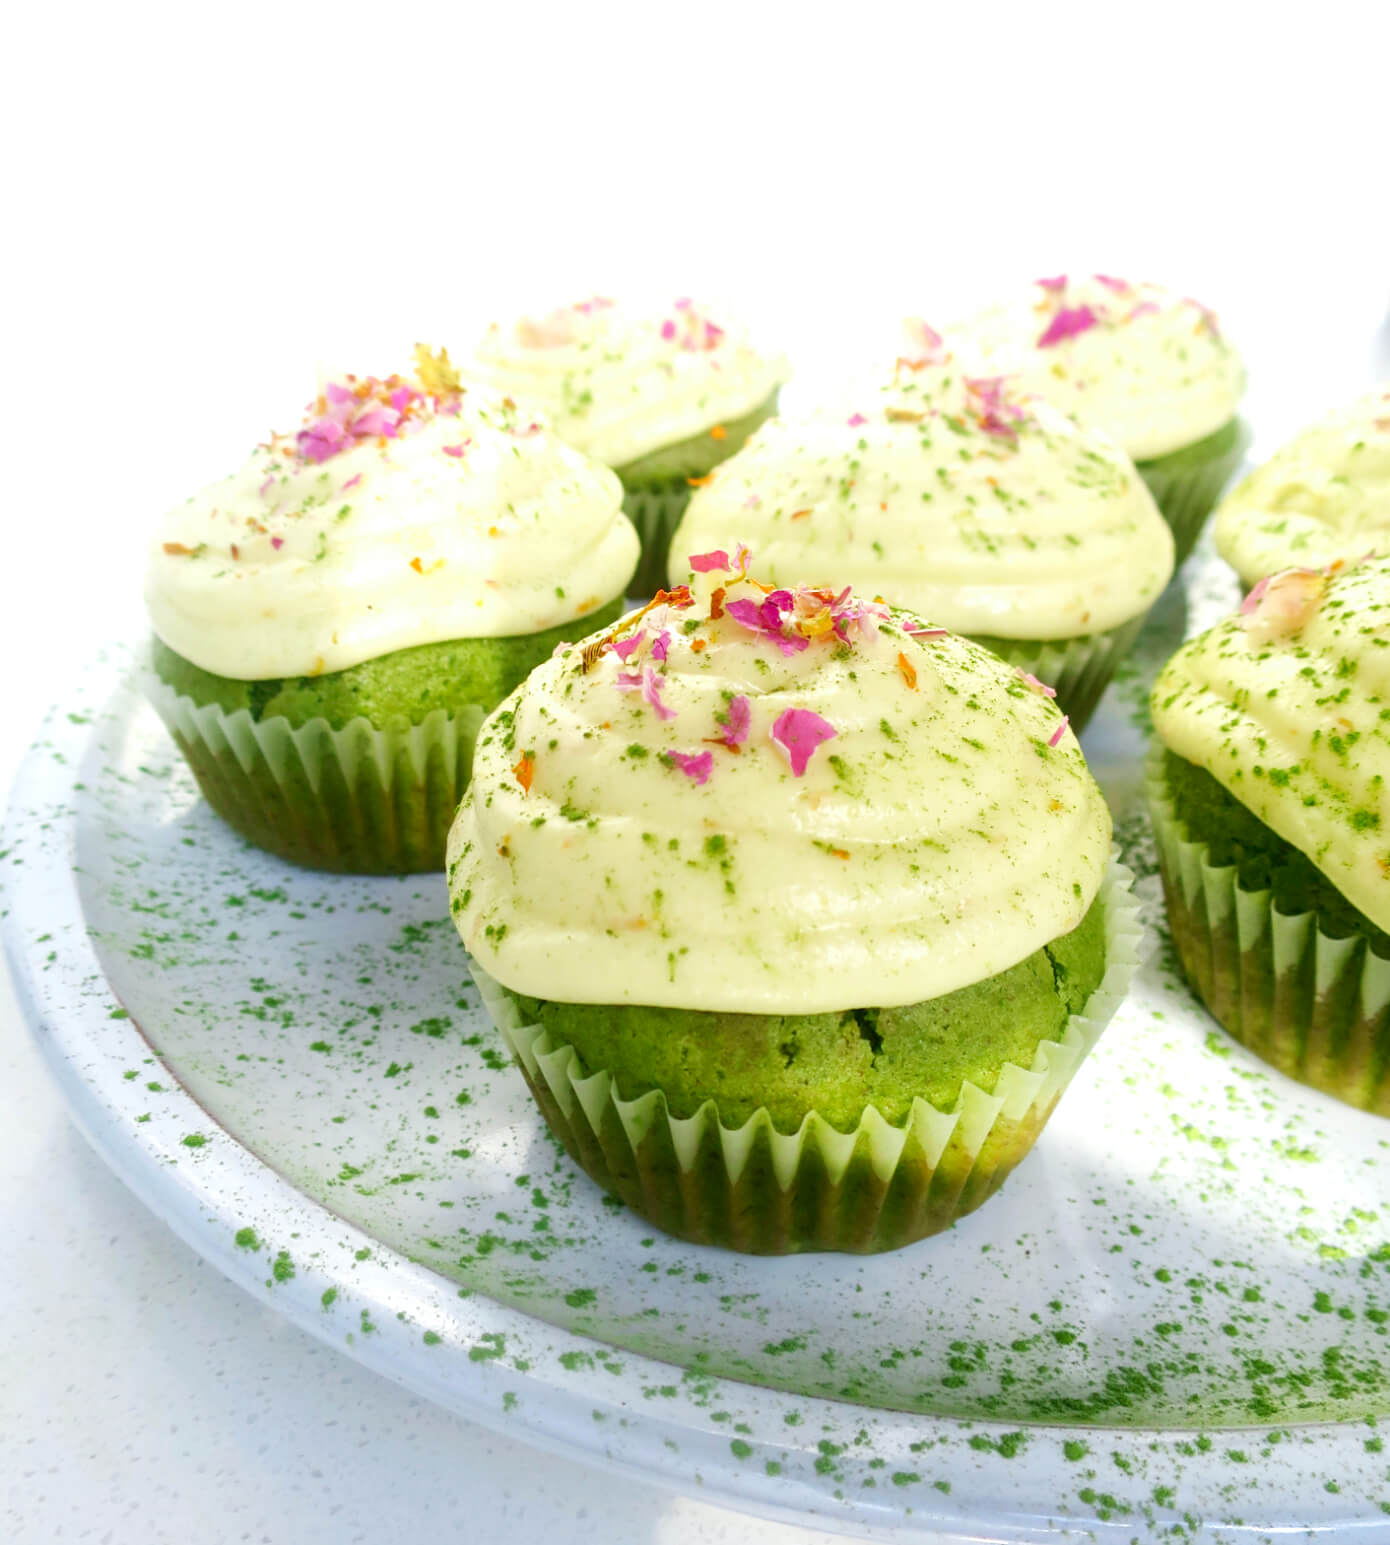 LolaMillieEats' Just Matcha Cupcakes with Orange Frosting